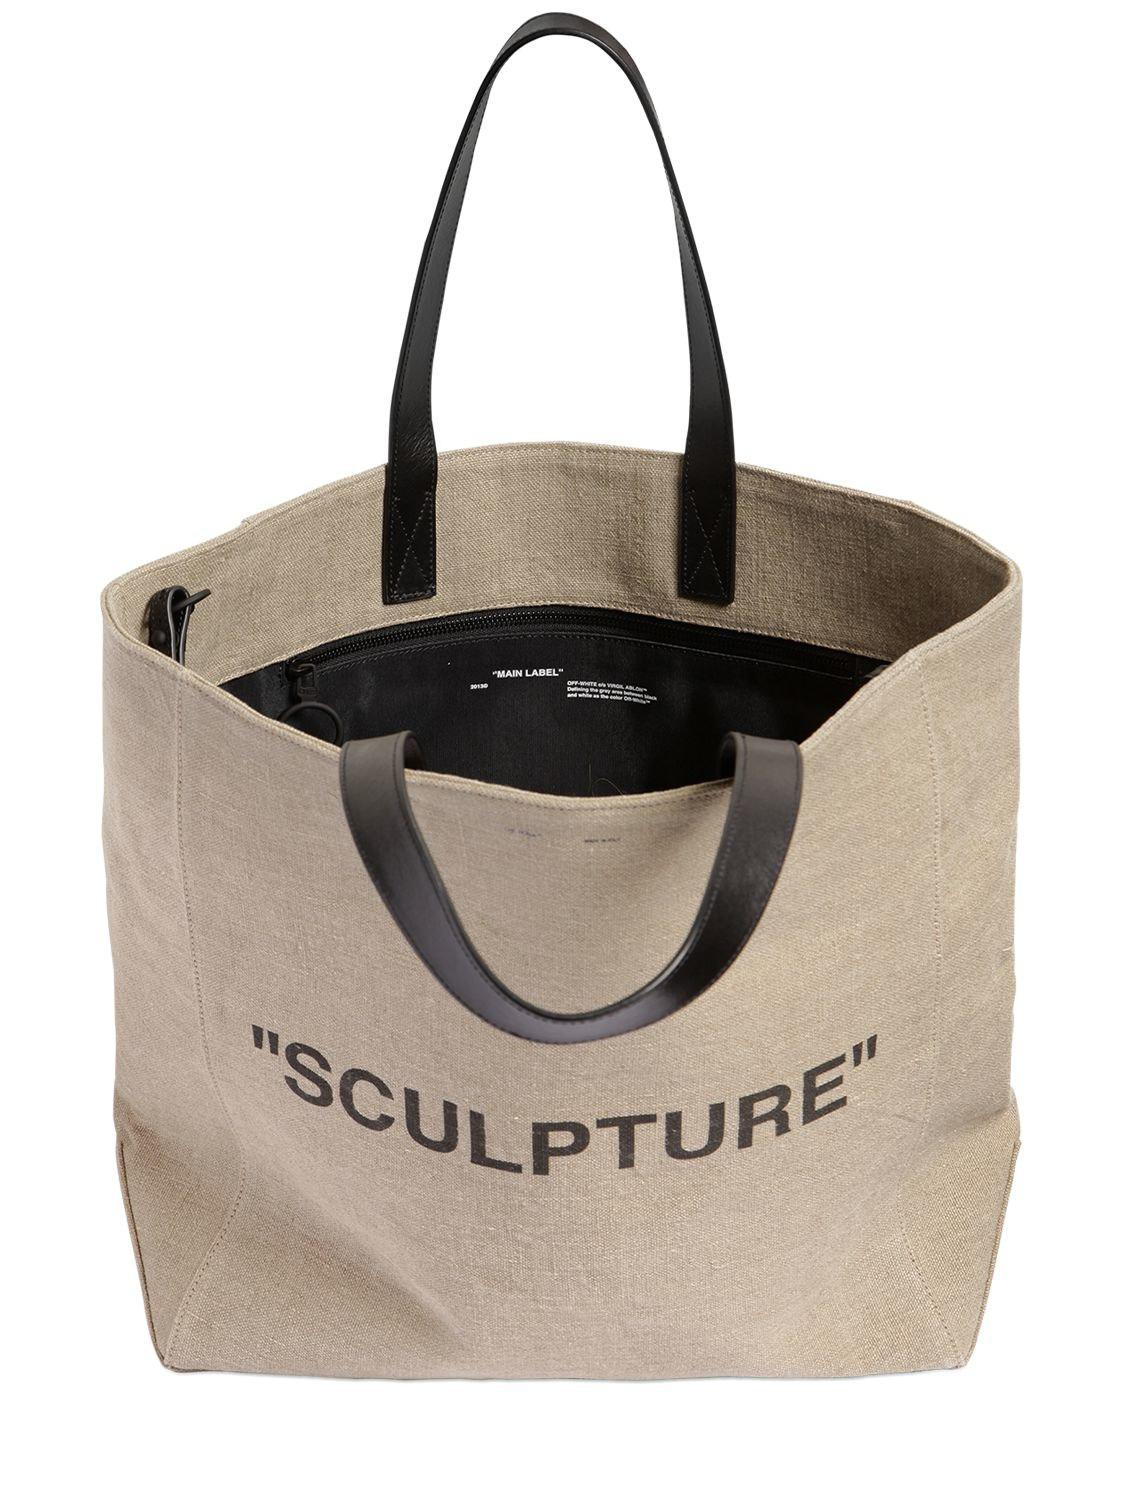 Off-white LARGE SCULPTURE PRINTED JUTE TOTE BAG lormWN8